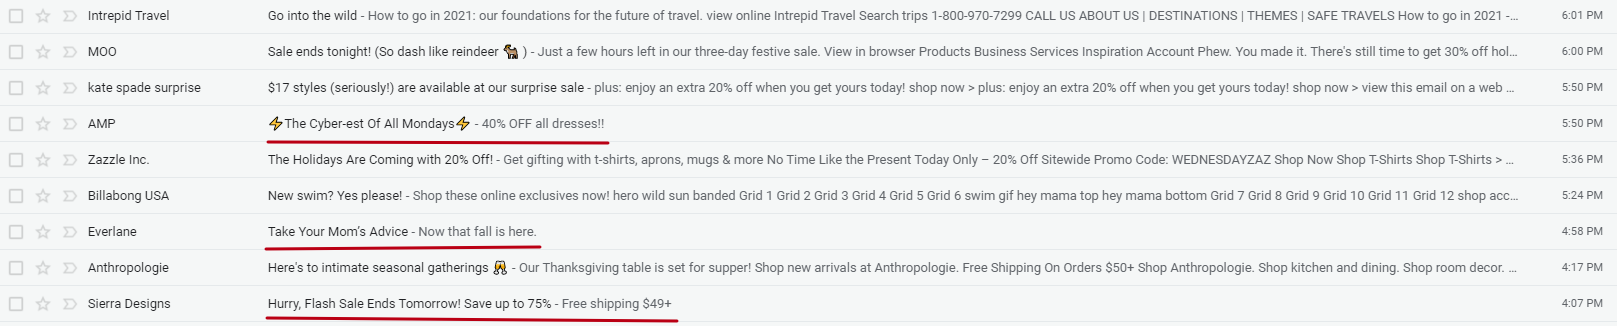 Subject lines in Gmail Inbox